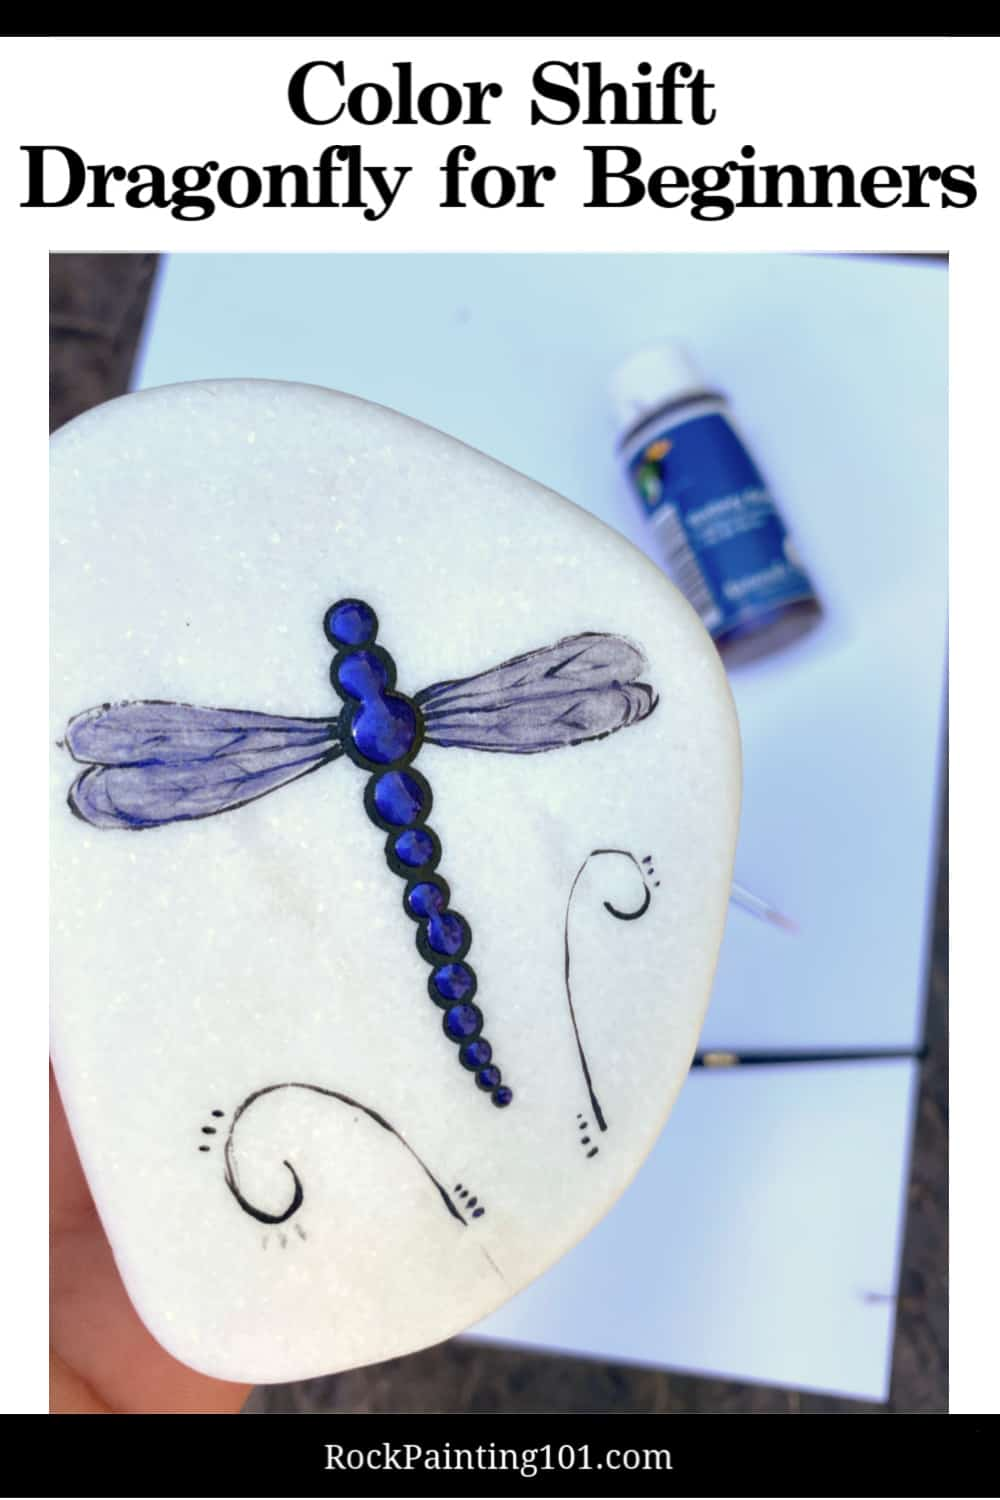 In today's tutorial we are teaching you how to paint dragonfly rocks. This tutorial is perfect for the rock painting beginner and features a beautiful color shift paint from Naturalis Paint that really makes these dragonflies sparkle! #rockpainting101 #drqagonfly #colorshif